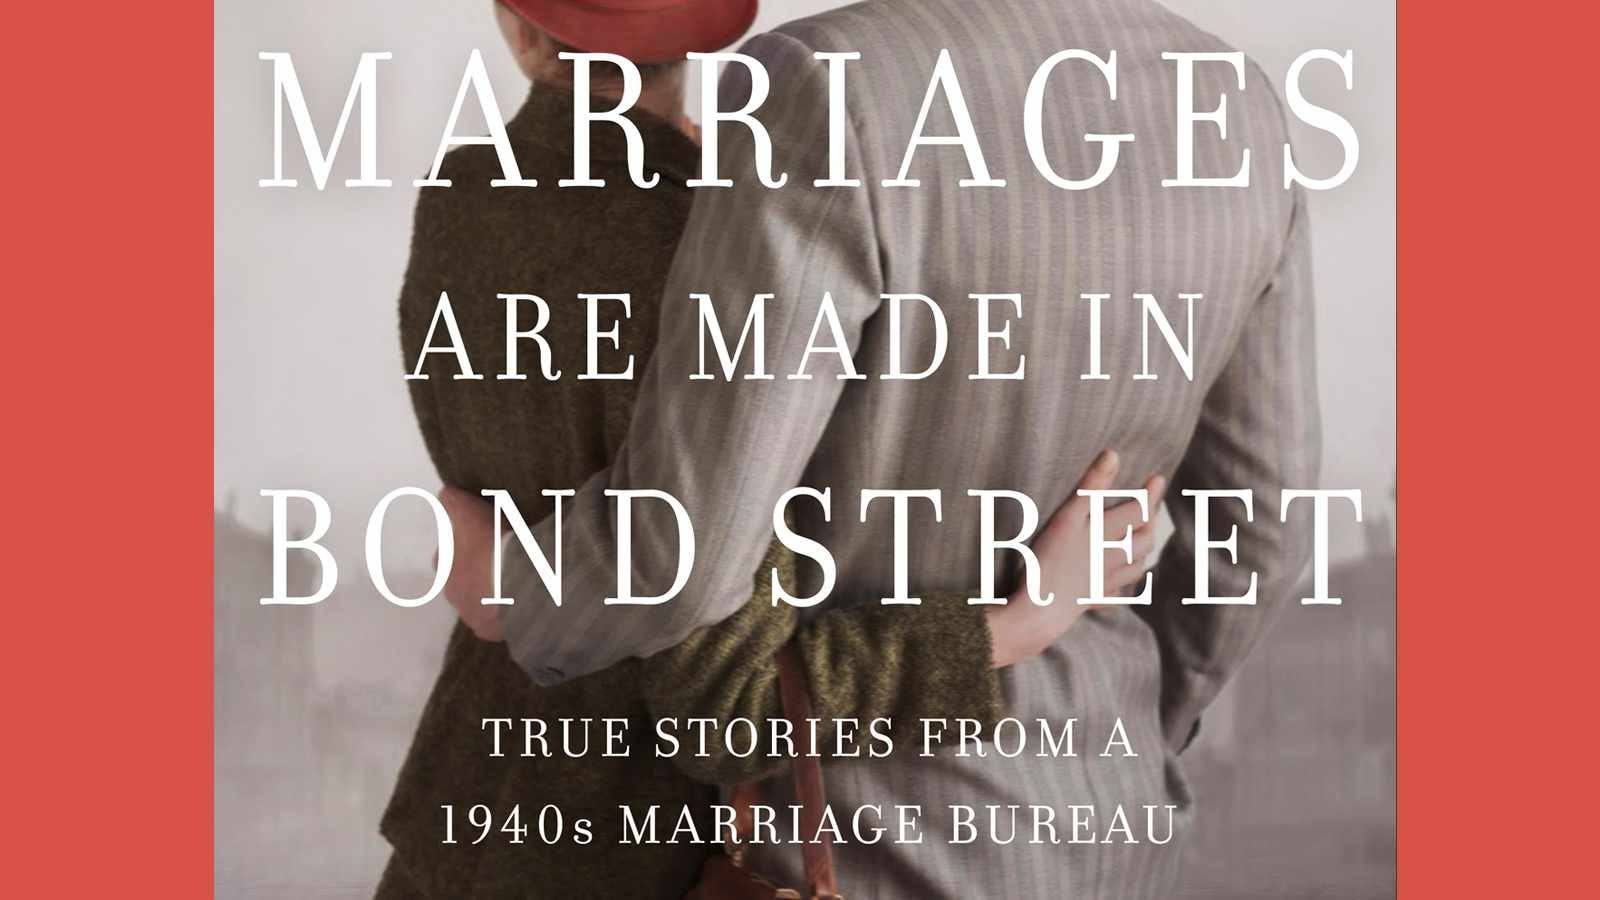 marriages-are-made-in-bond-street-sml.jpg